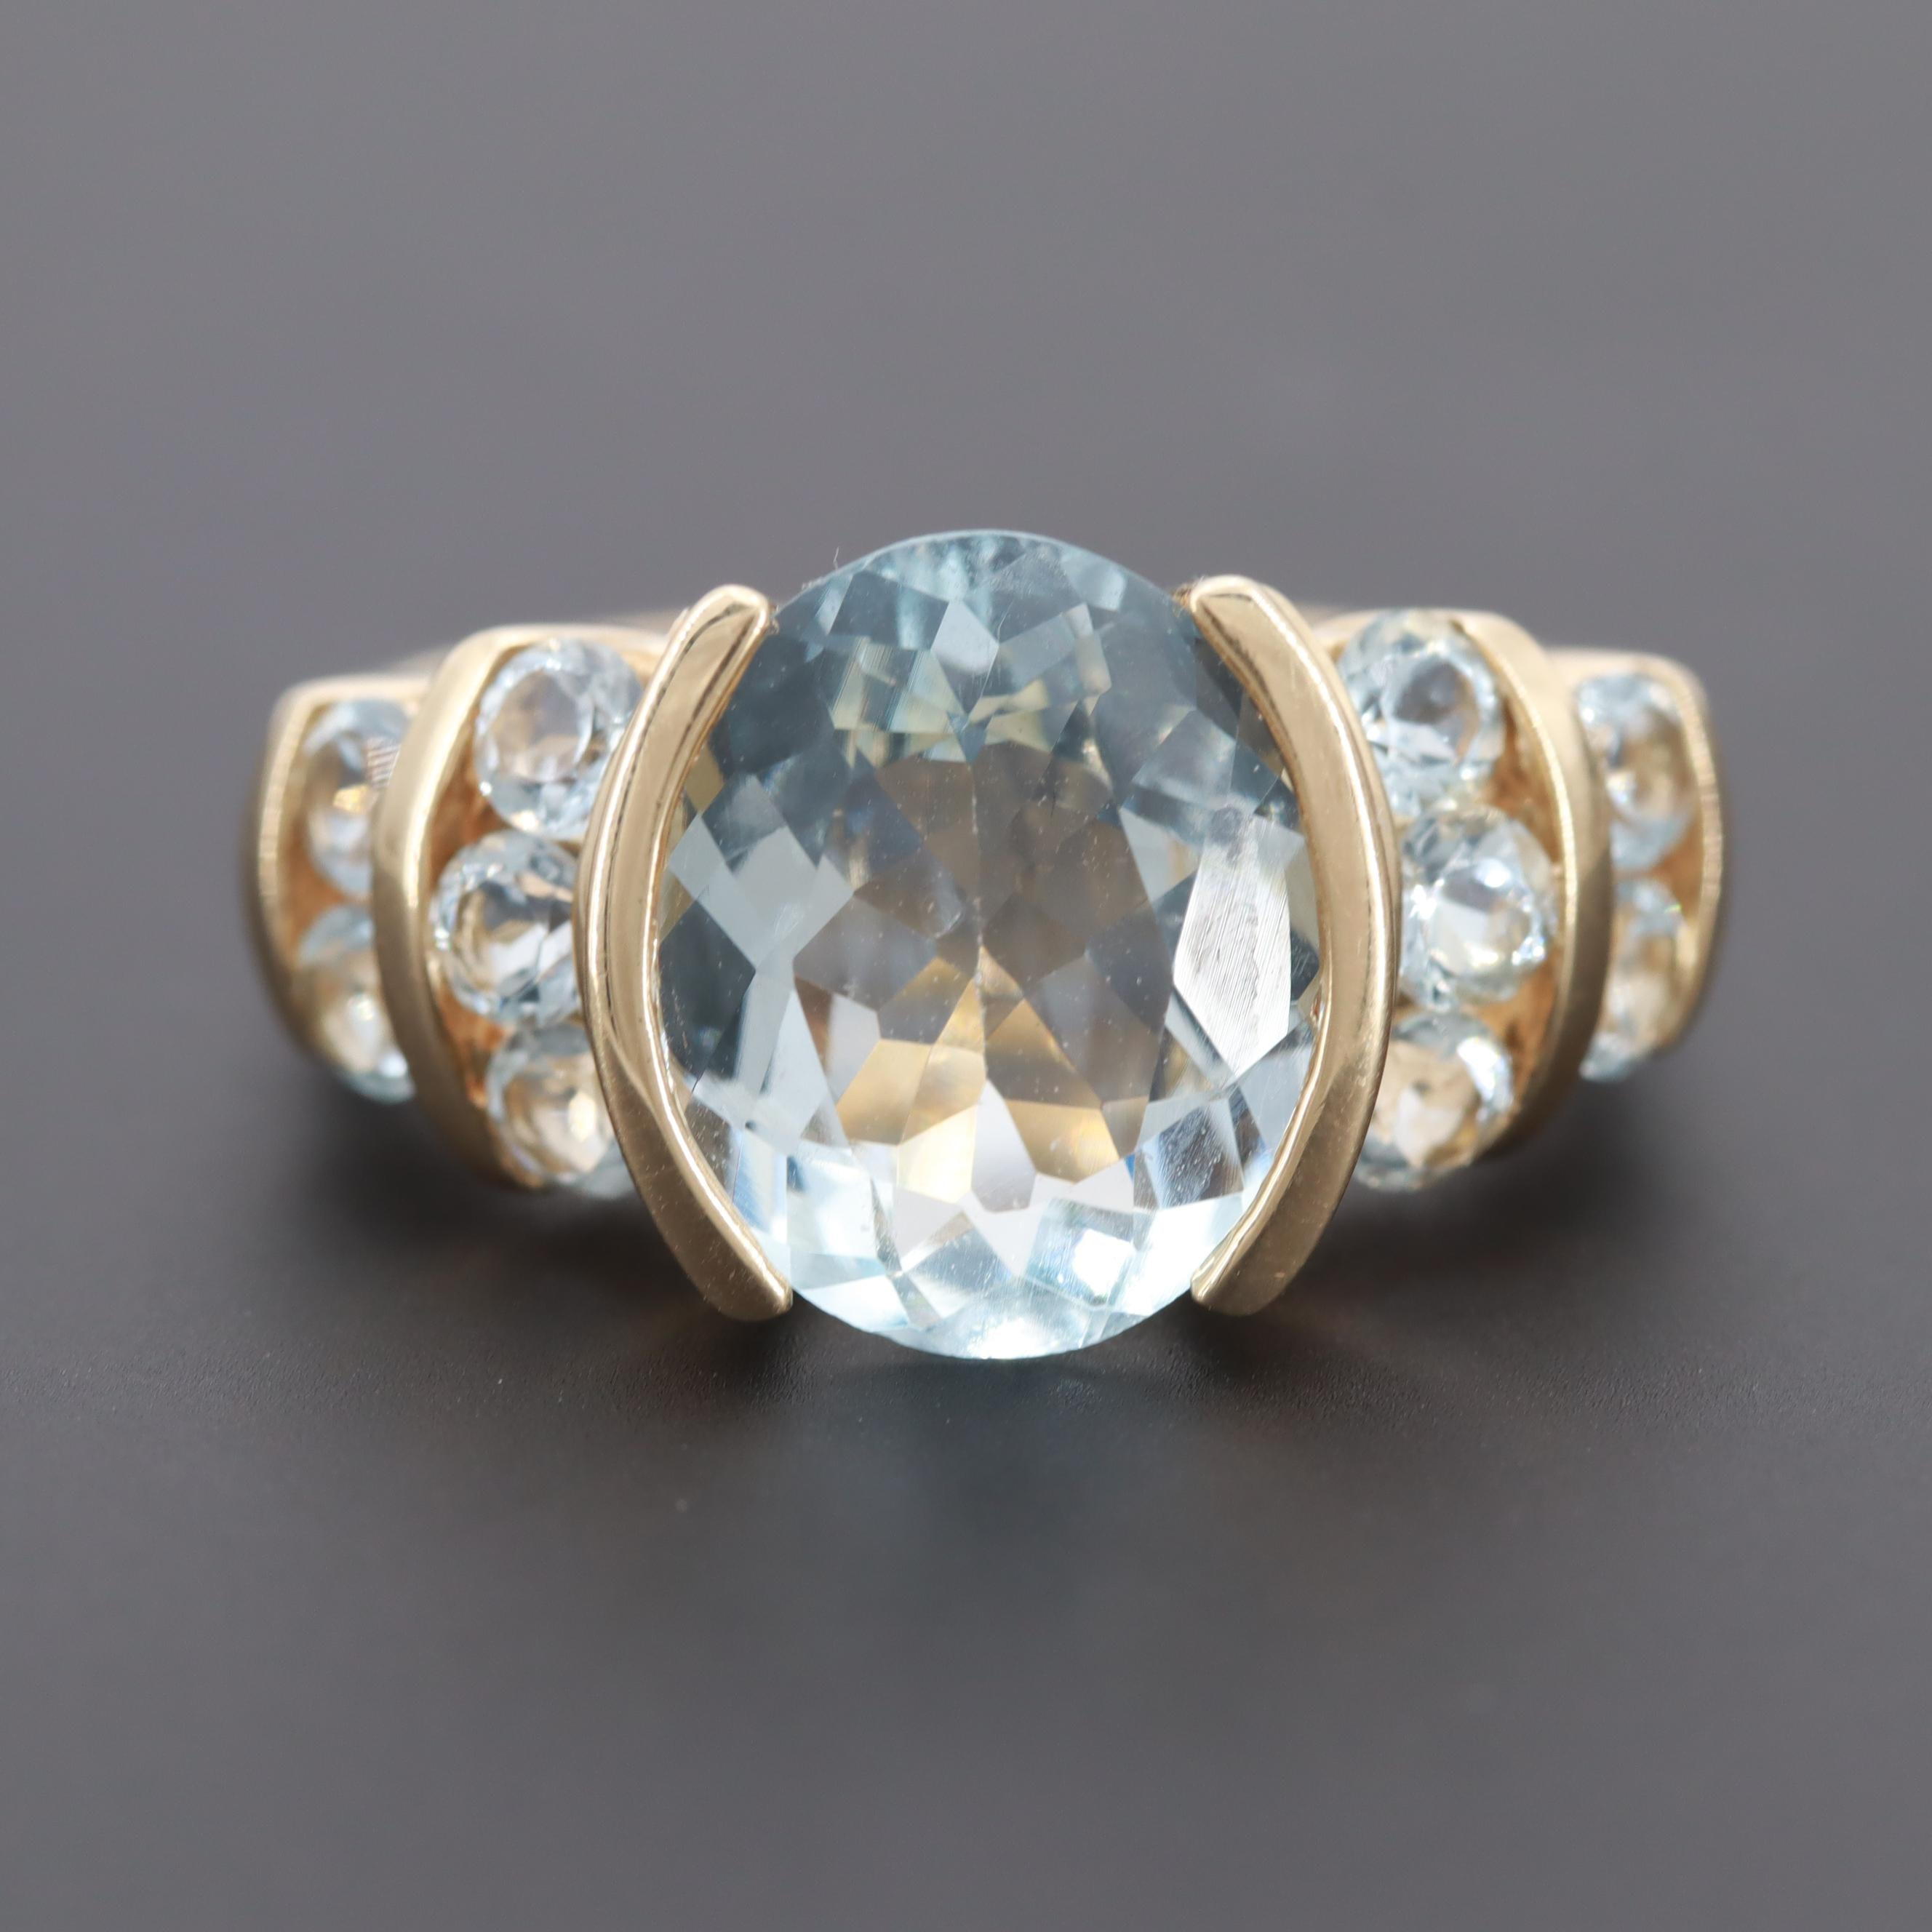 10K Yellow Gold Aquamarine Ring with 3.34 CT Center Stone